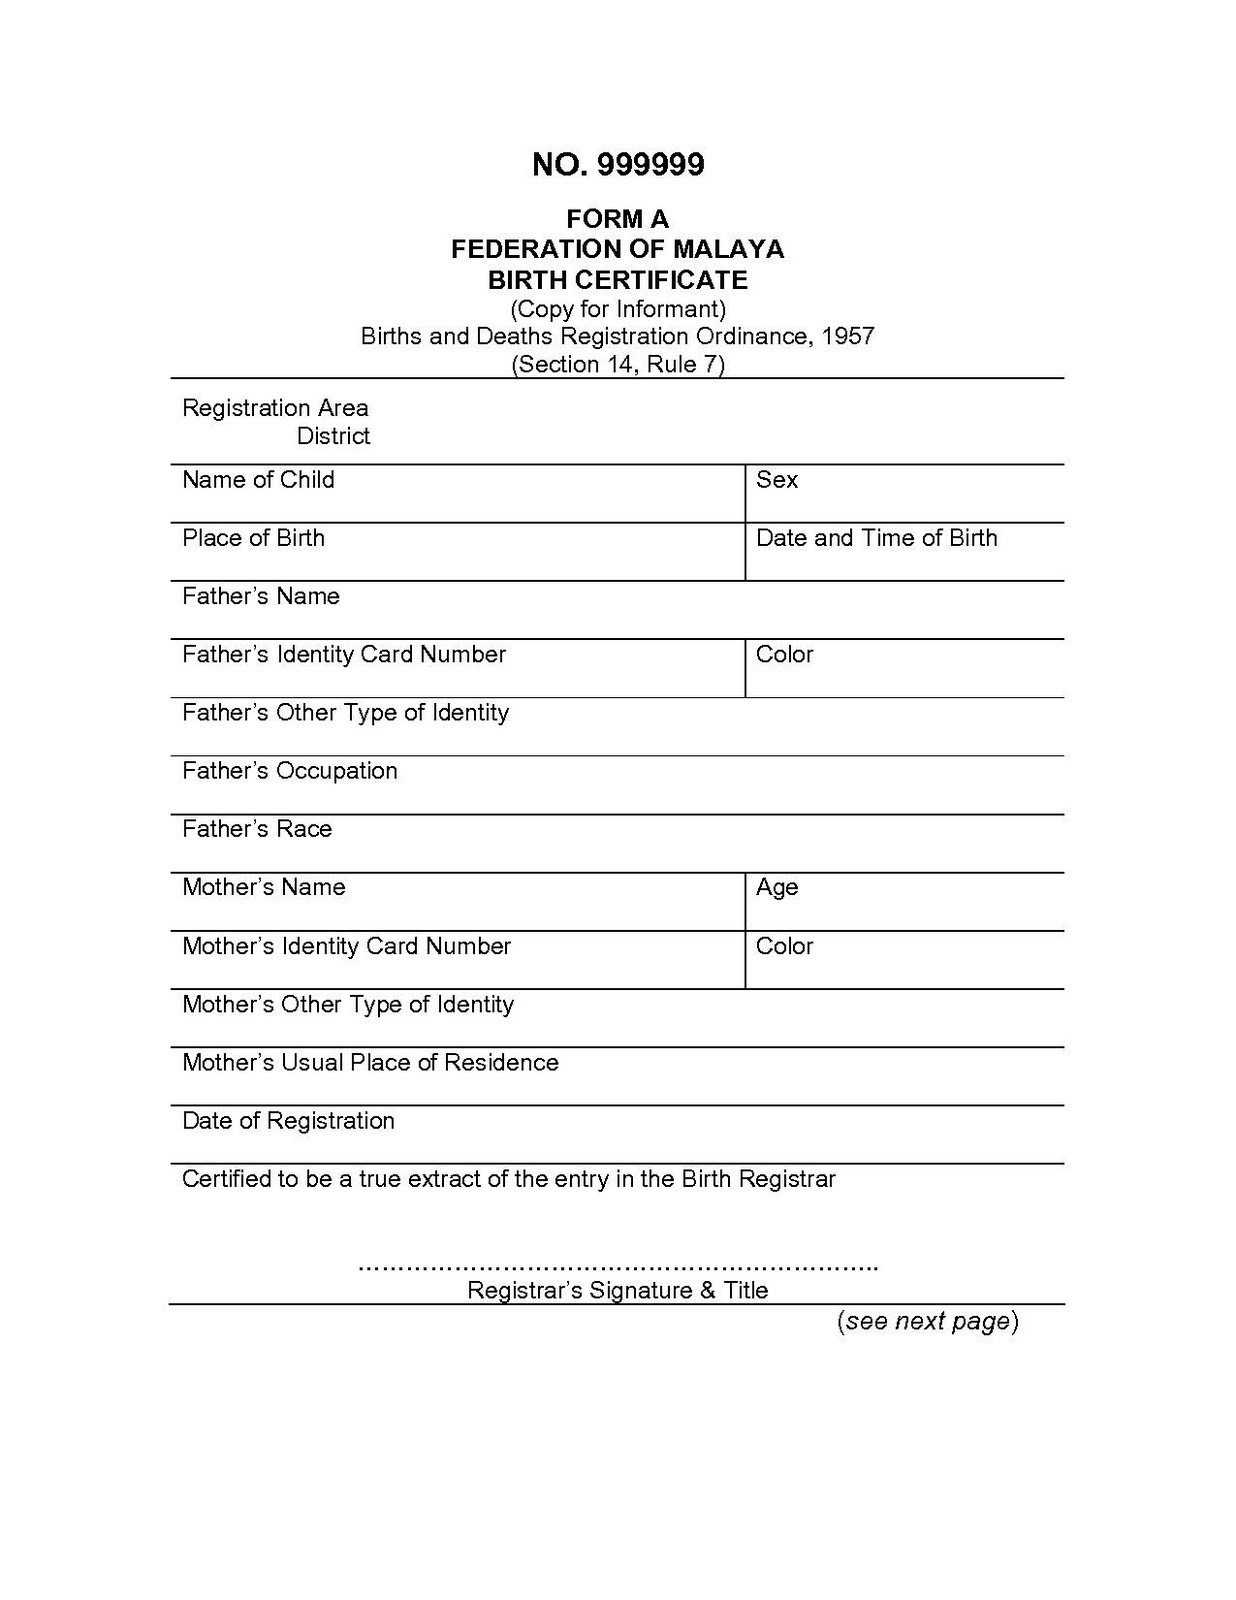 Spanish To English Birth Certificate Translation Template Intended For Birth Certificate Translation Template English To Spanish